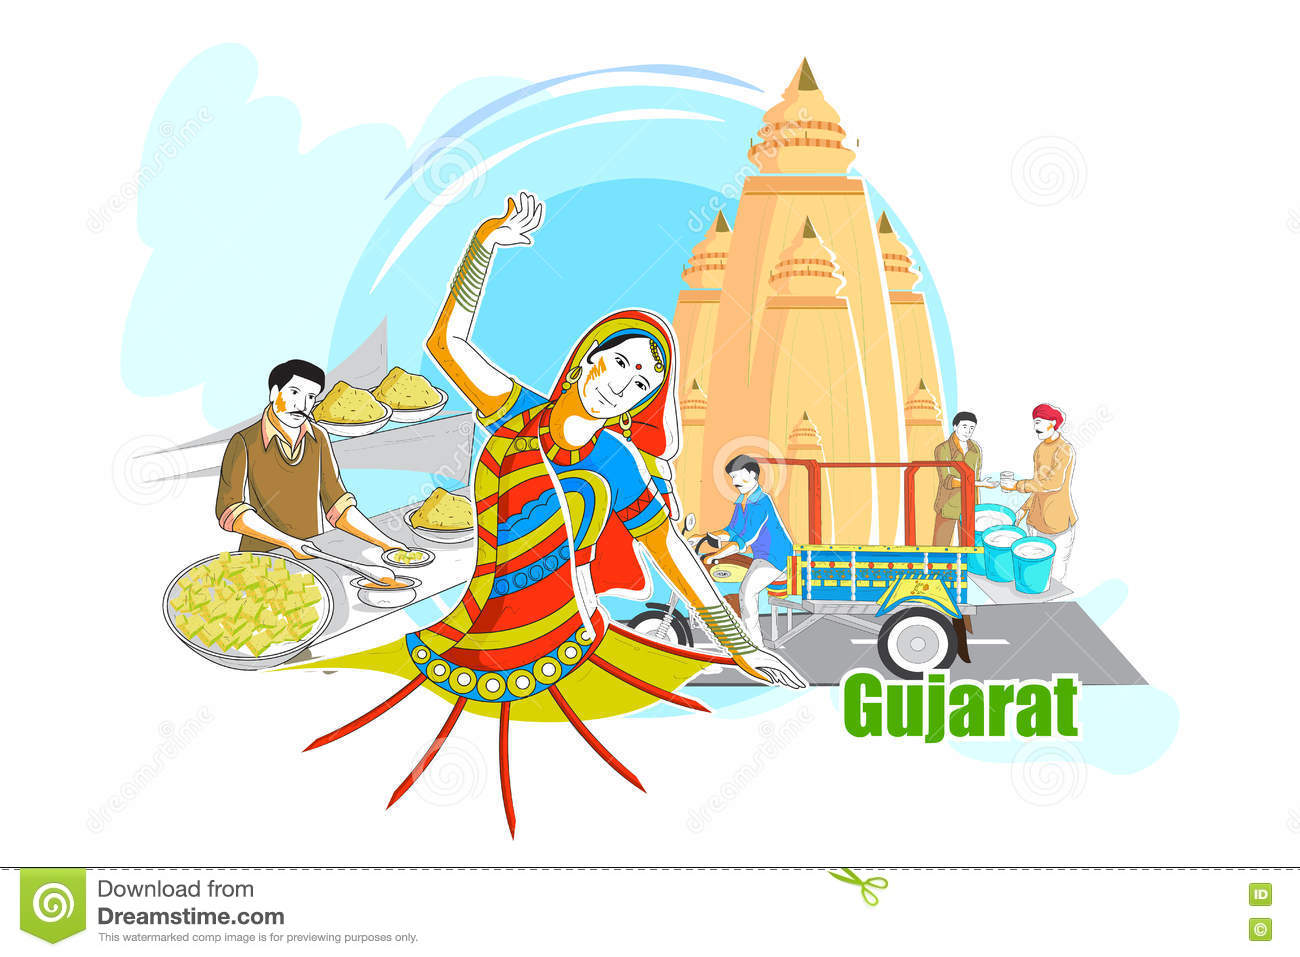 d80421ded2 Easy to edit vector illustration of people and culture of Gujarat, India